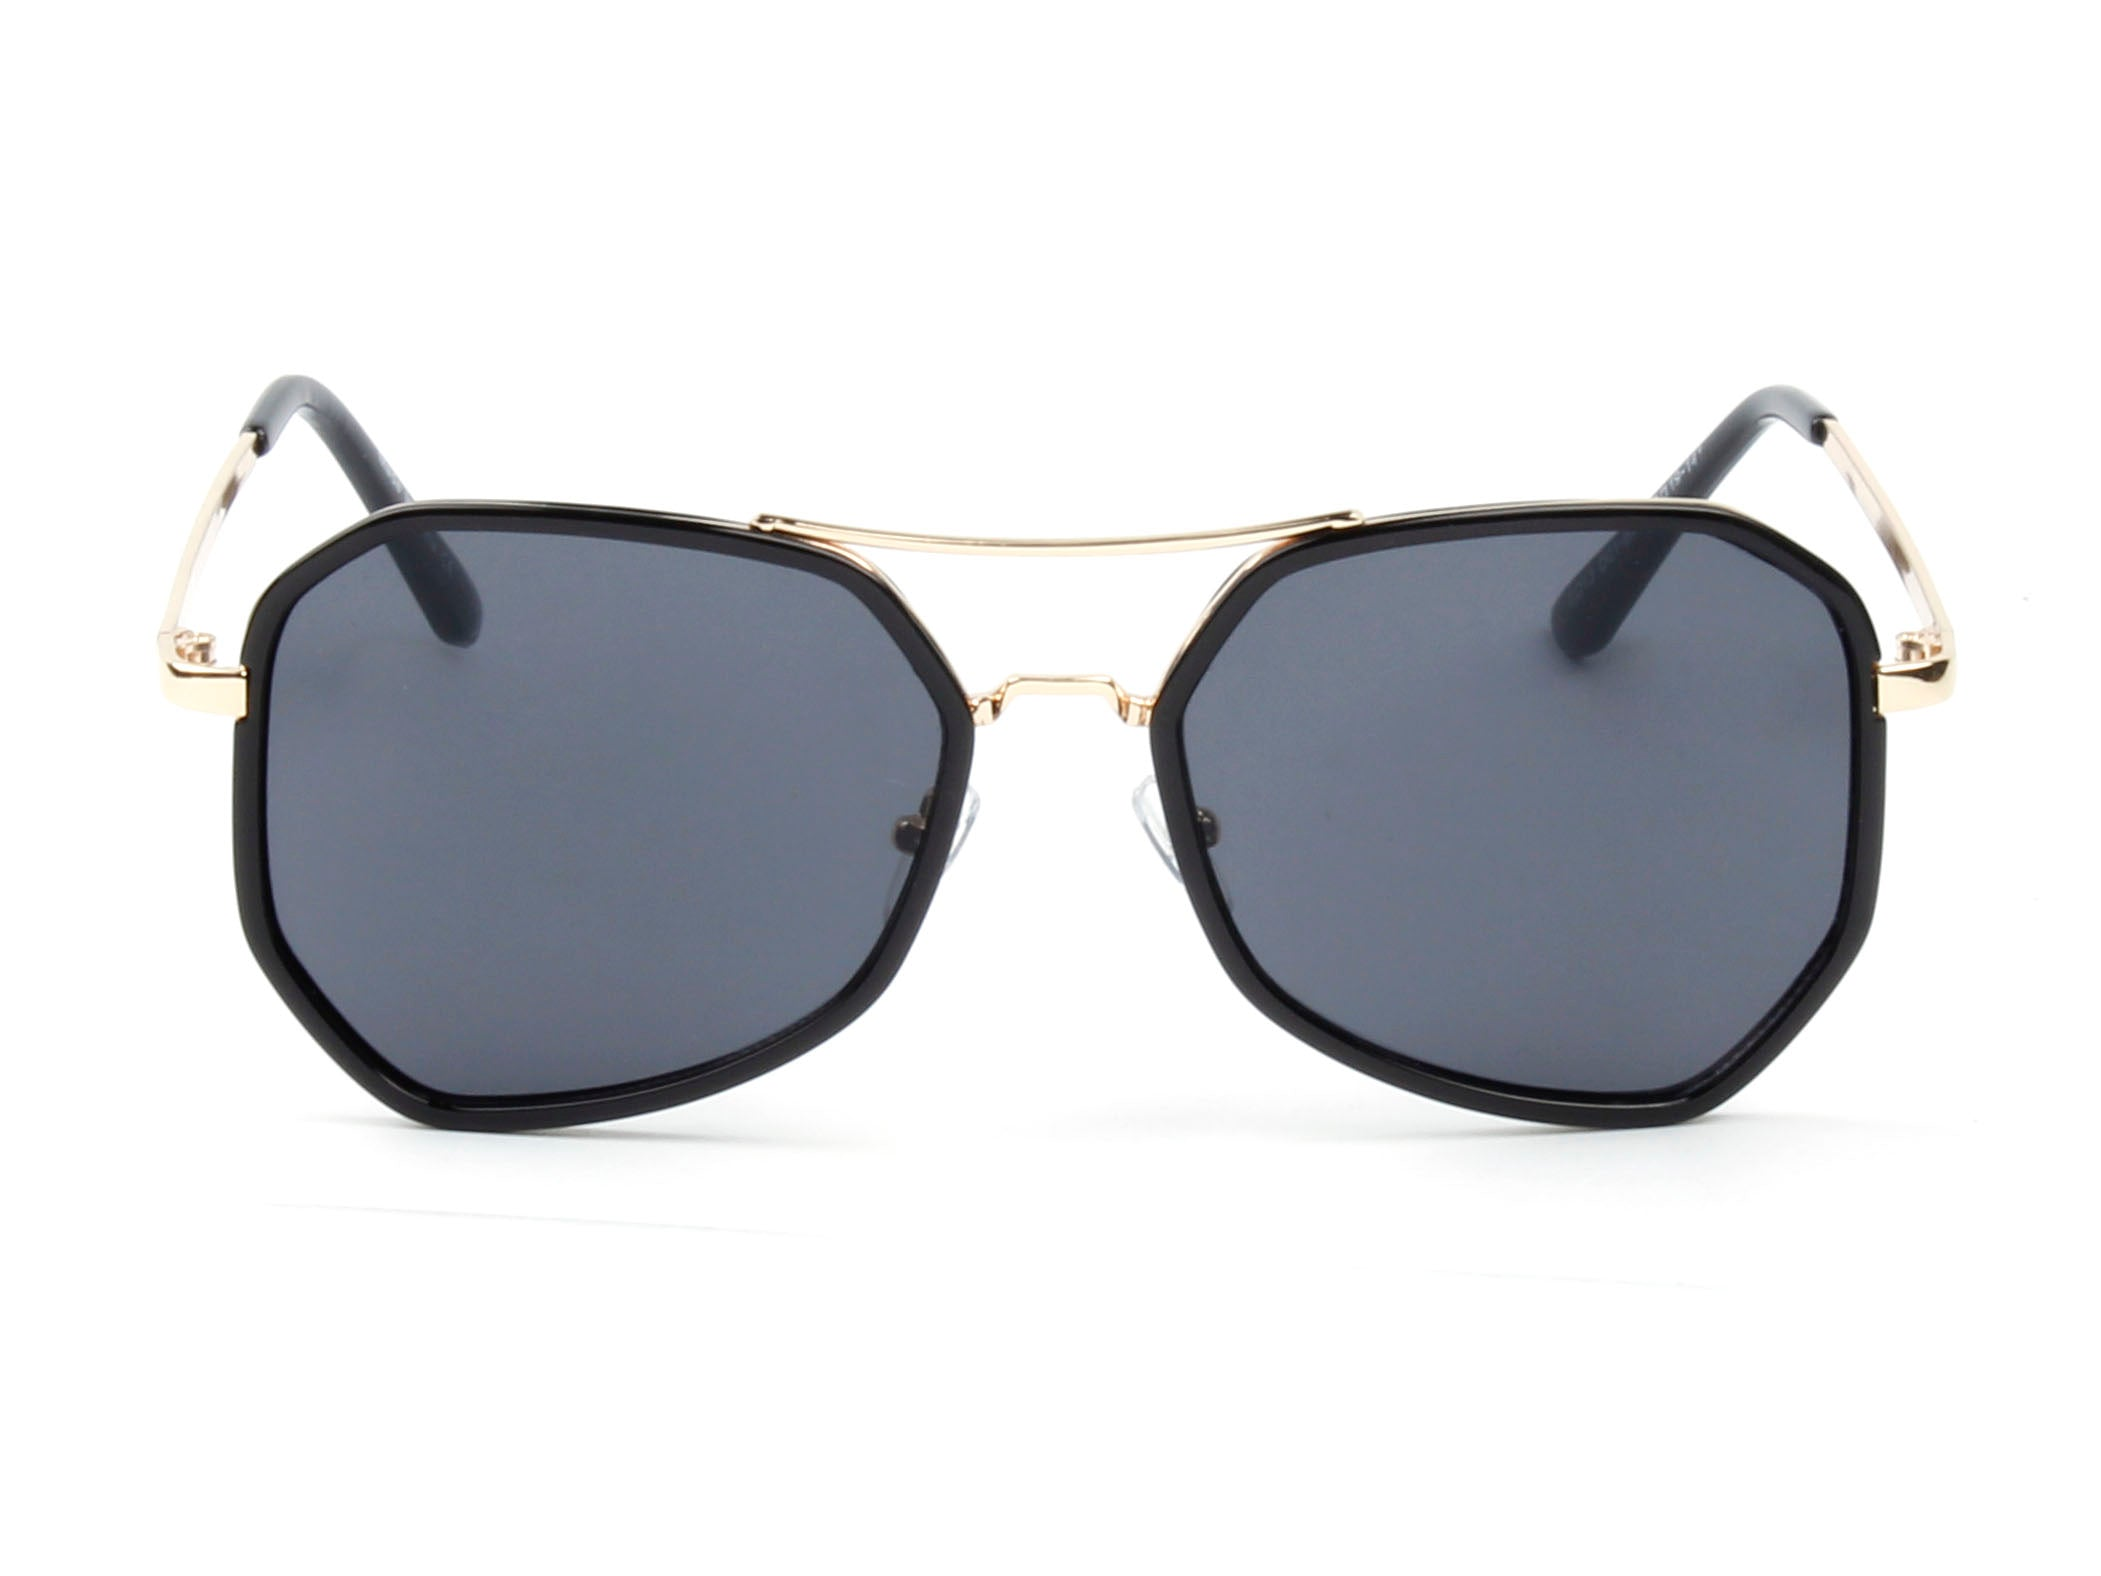 Women Mirrored Oversized Fashion Sunglasses - Black